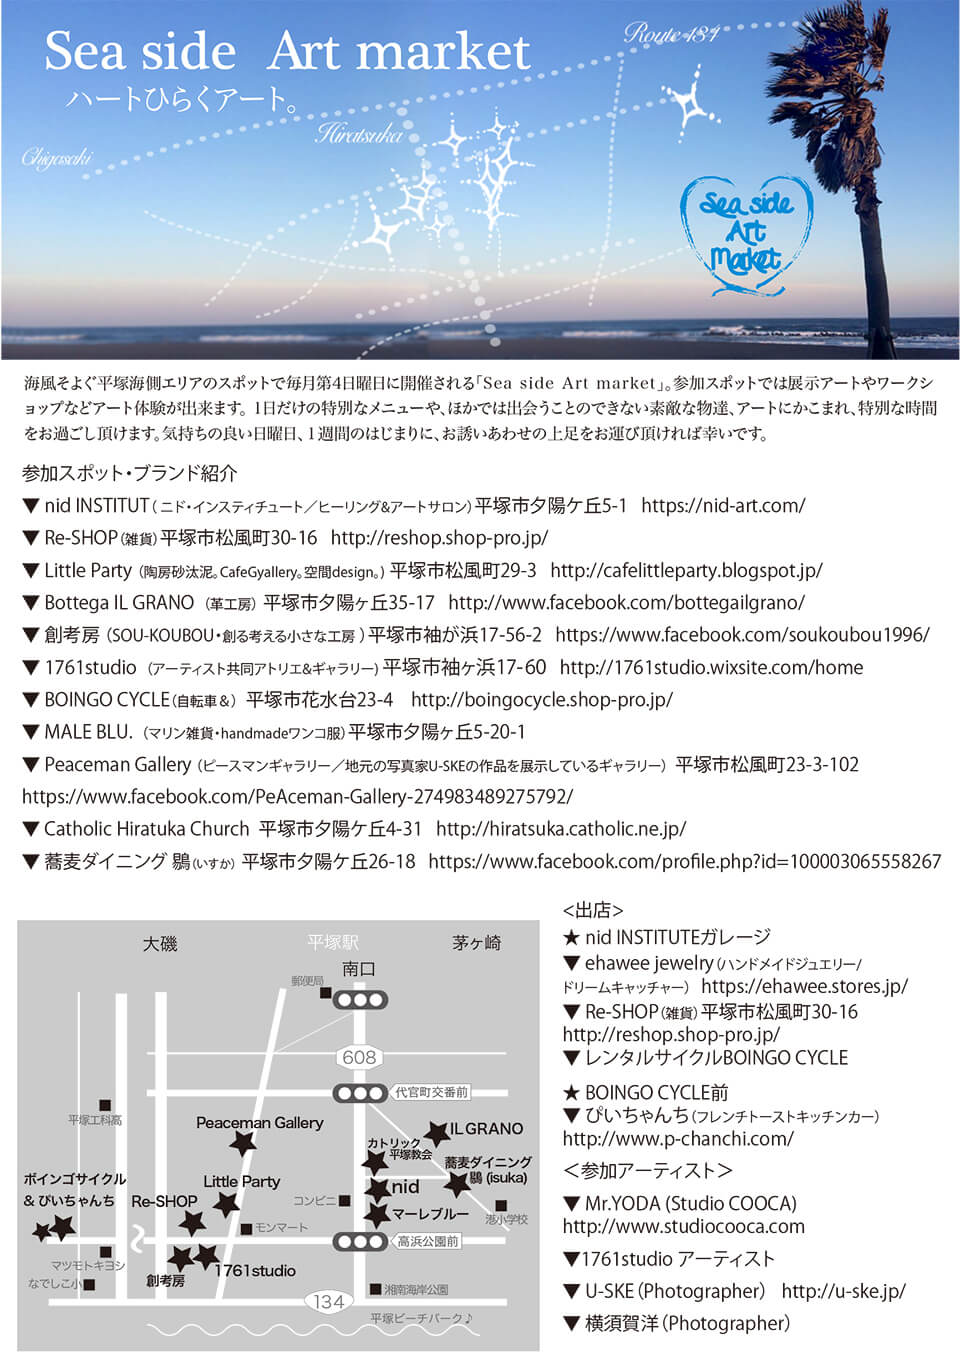 Sea-side-Art-market-mapフライヤー仮A5_2017.2